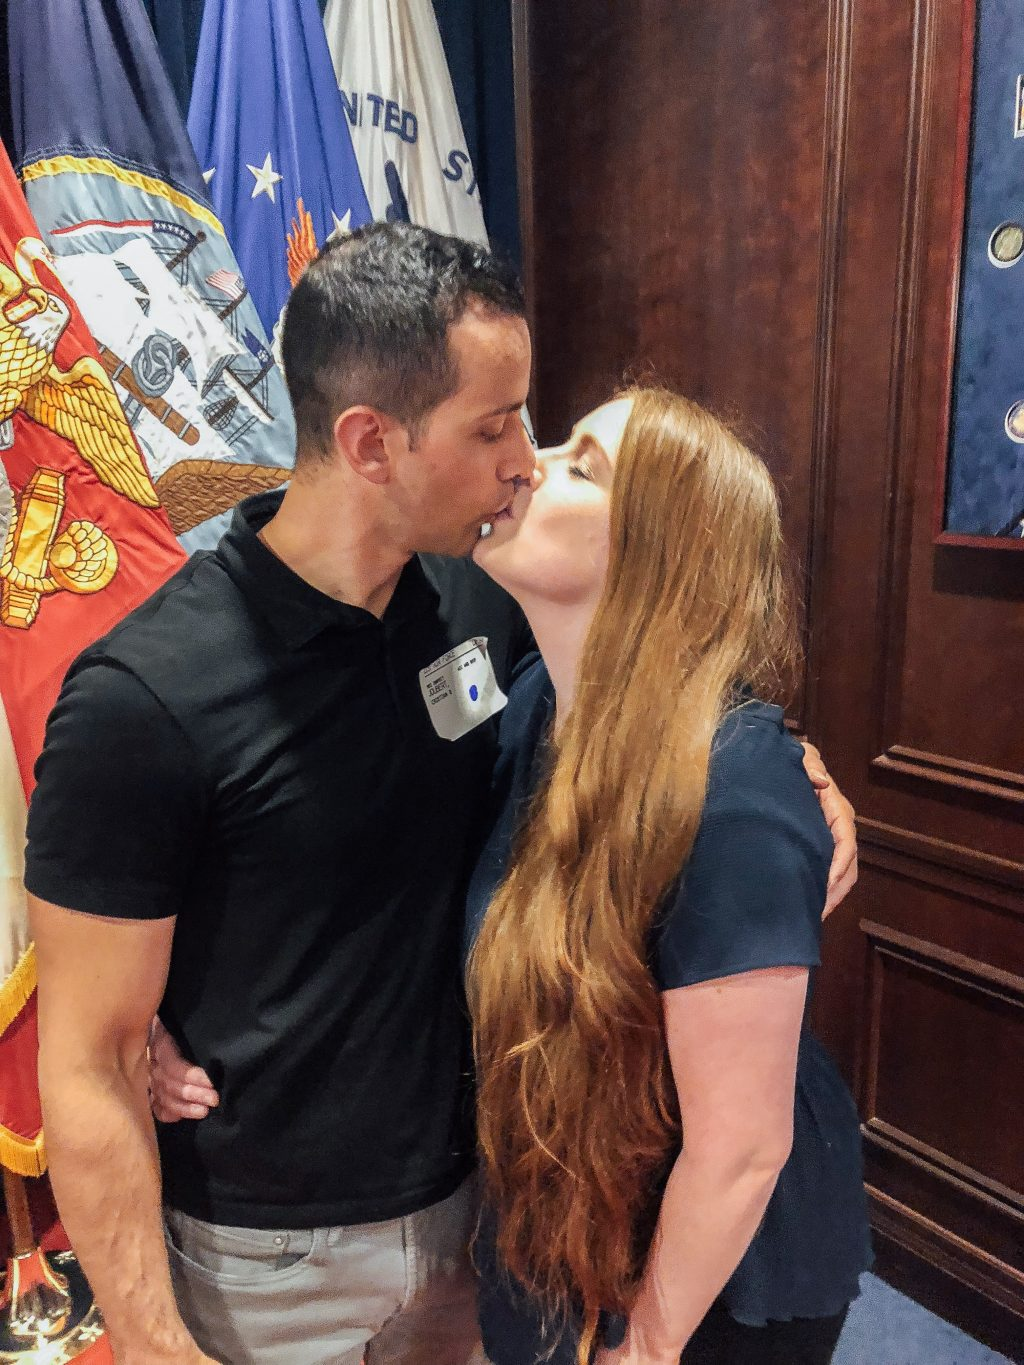 MEPS Air force swear in spouse photo